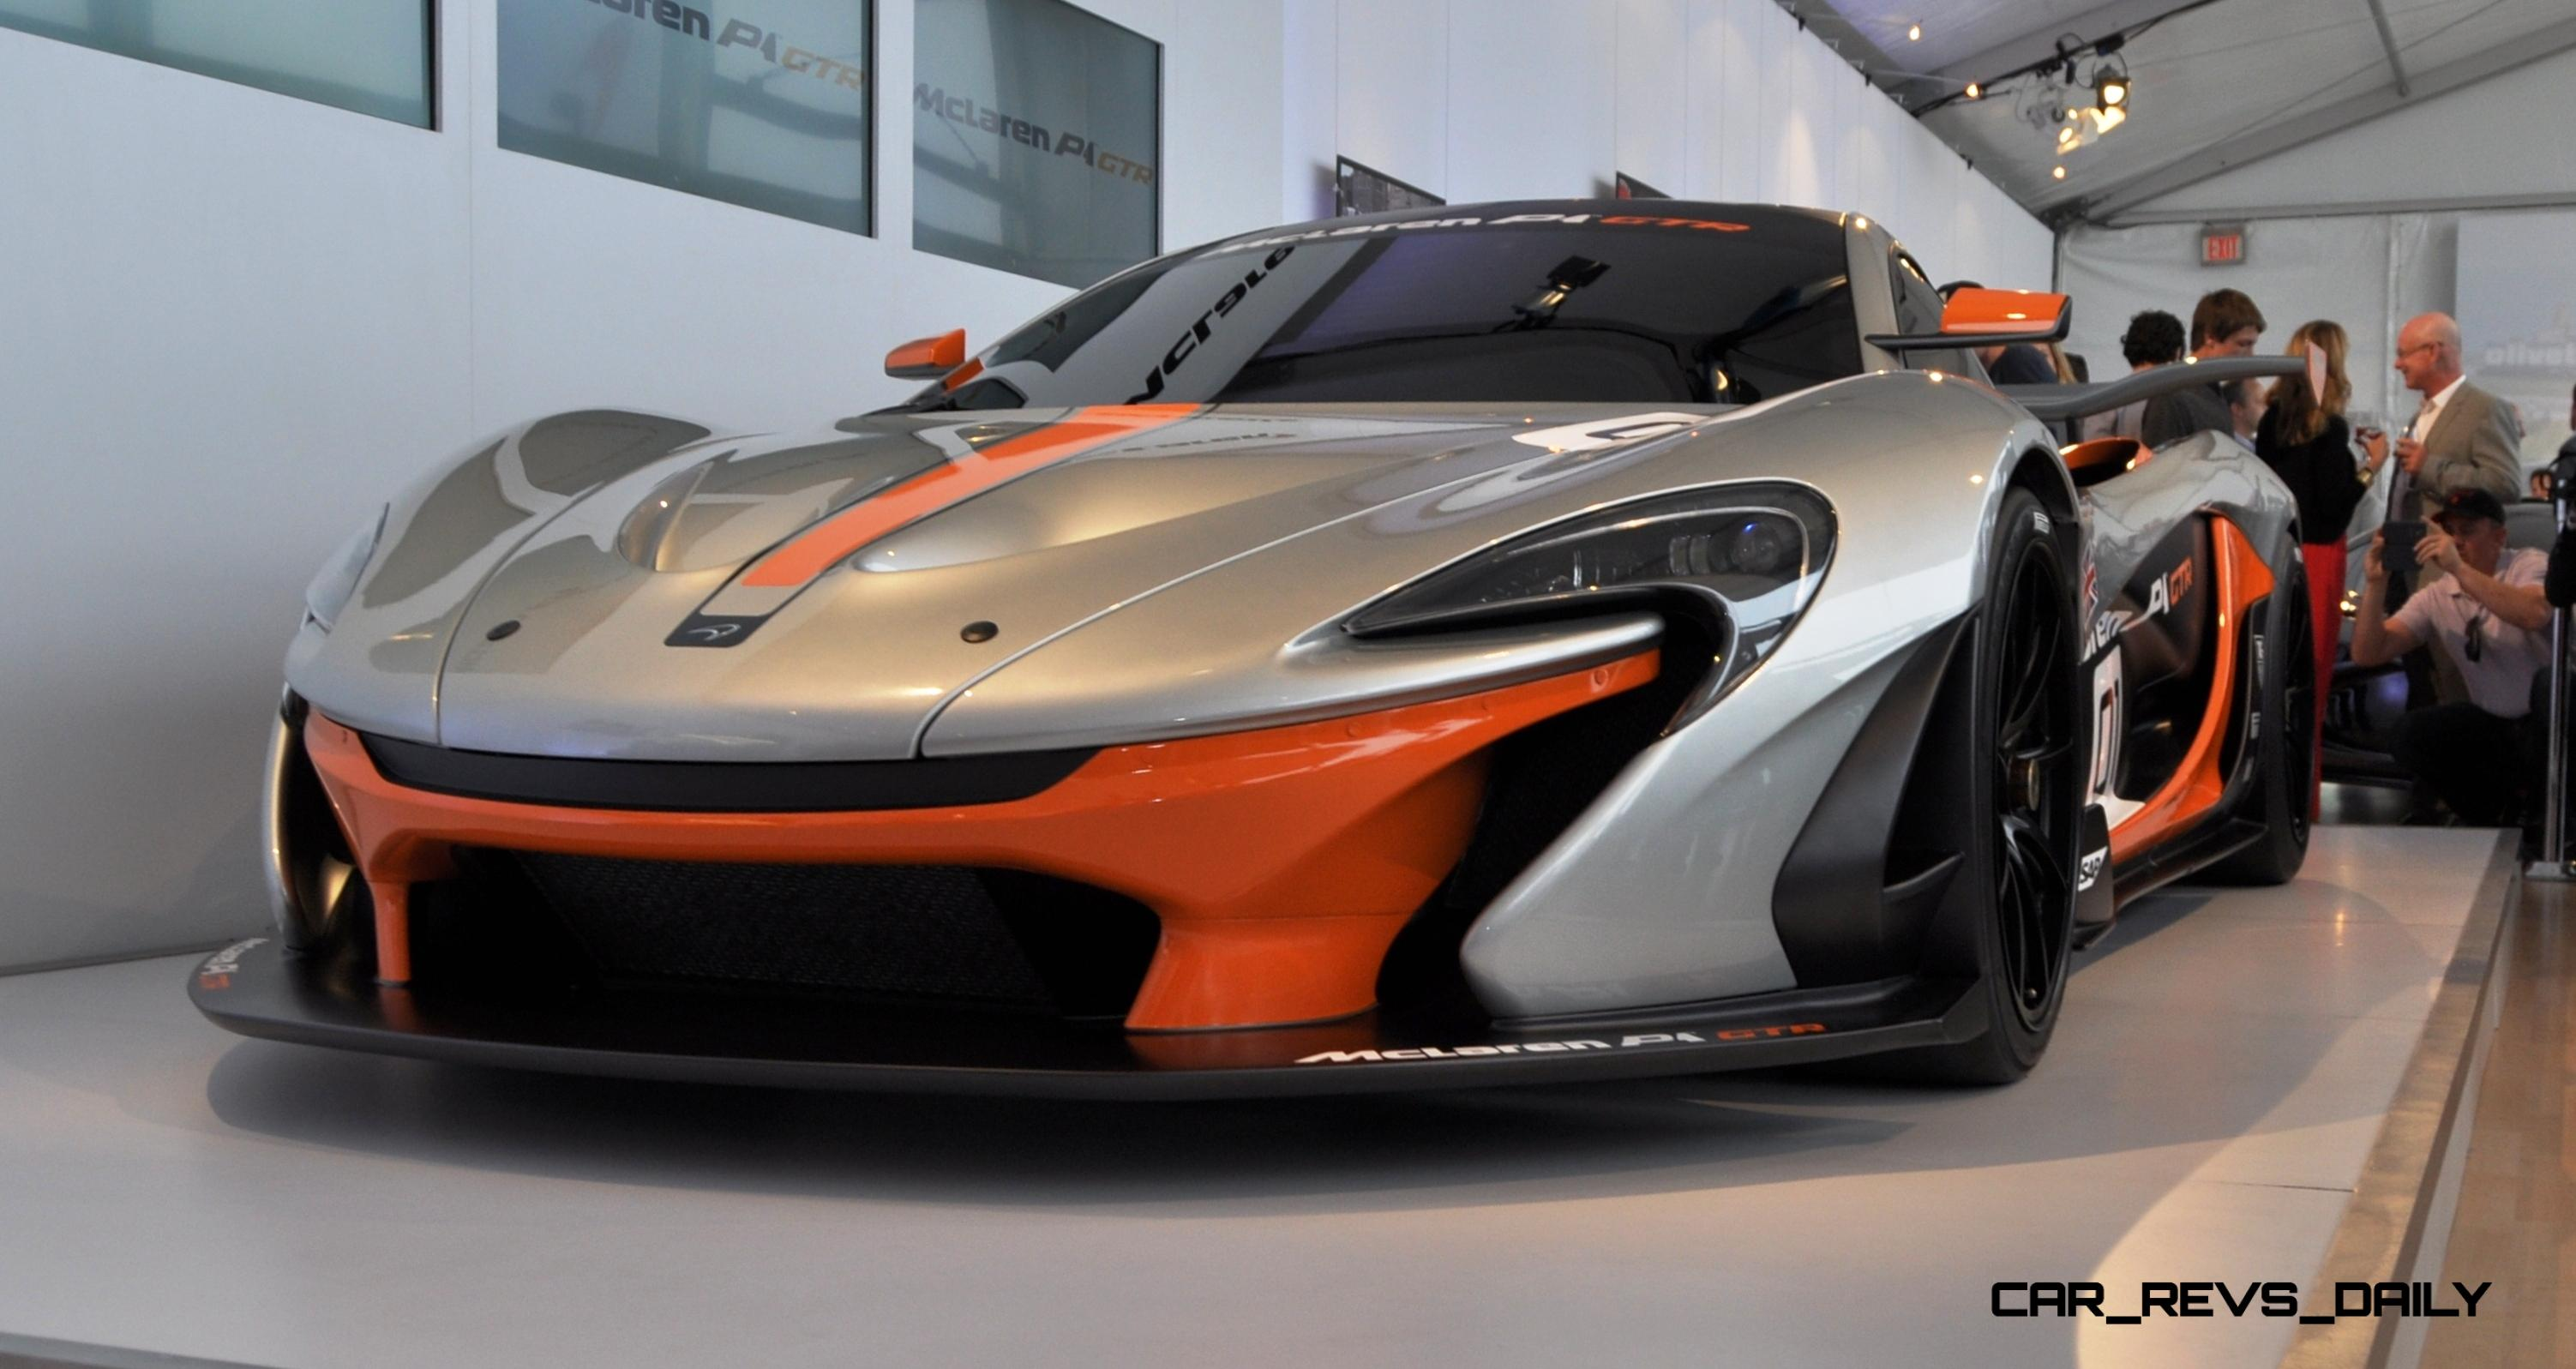 2015 mclaren p1 gtr pebble beach world debut in 55 high res photos. Black Bedroom Furniture Sets. Home Design Ideas